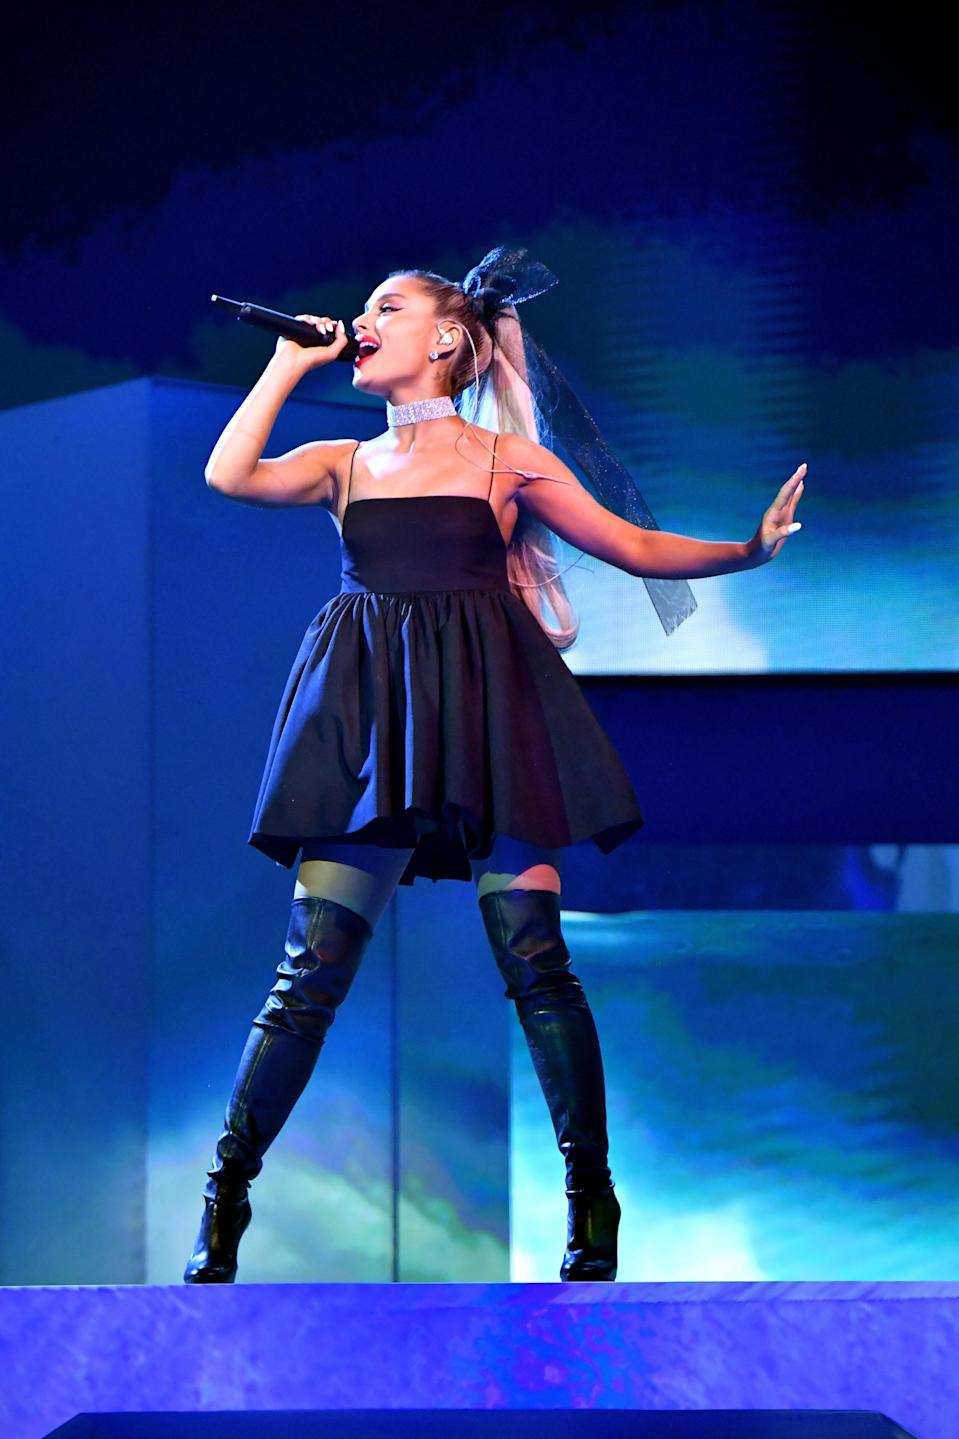 """While performing """"No Tears Left To Cry,"""" the singer looked both chic and sexy in her empire waist LBD with matching thigh-high boots and blinged out choker."""